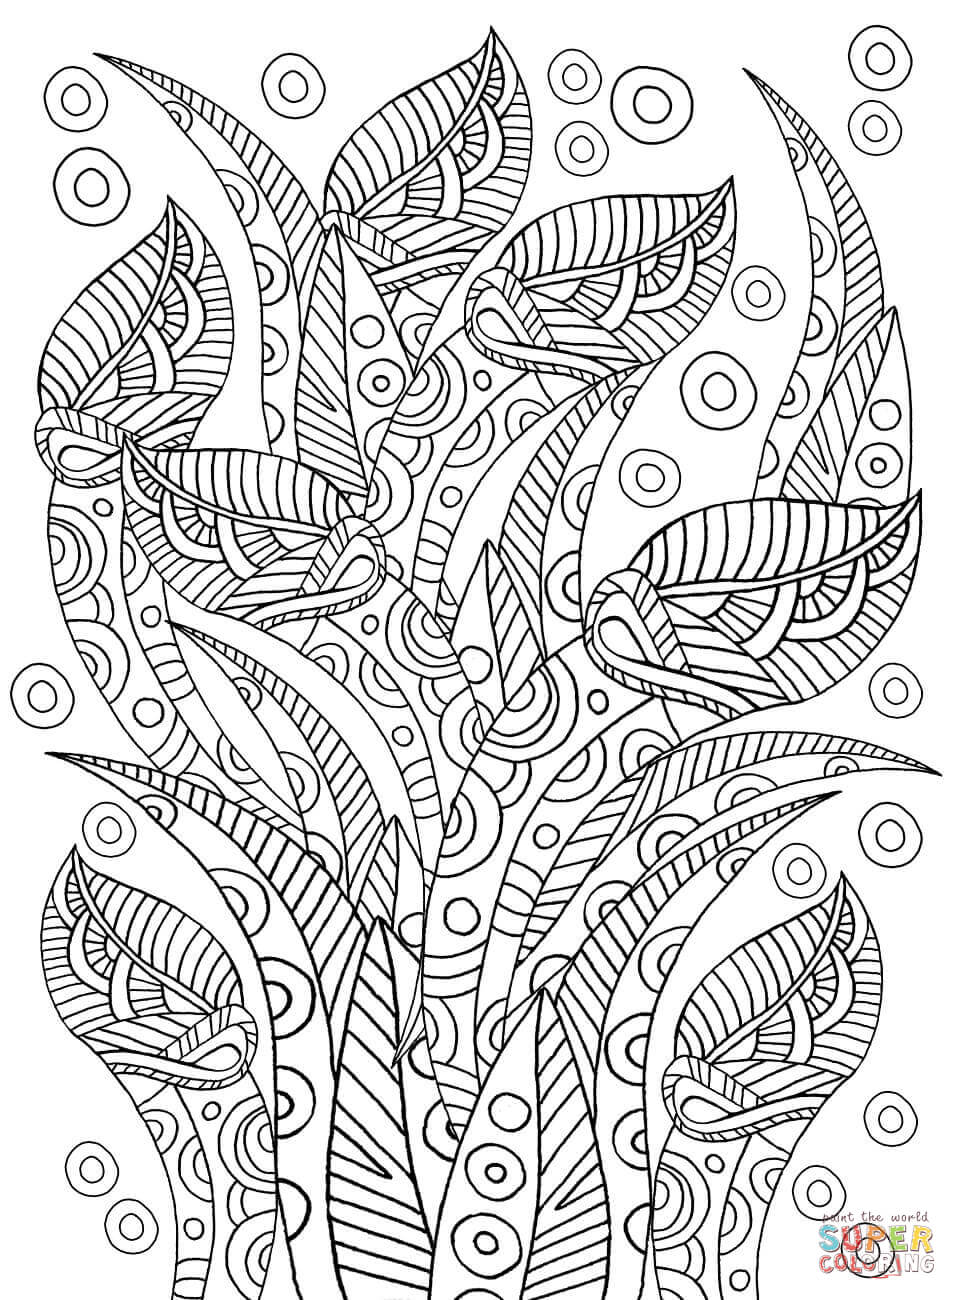 pattern coloring books floral pattern coloring page free printable coloring pages coloring pattern books